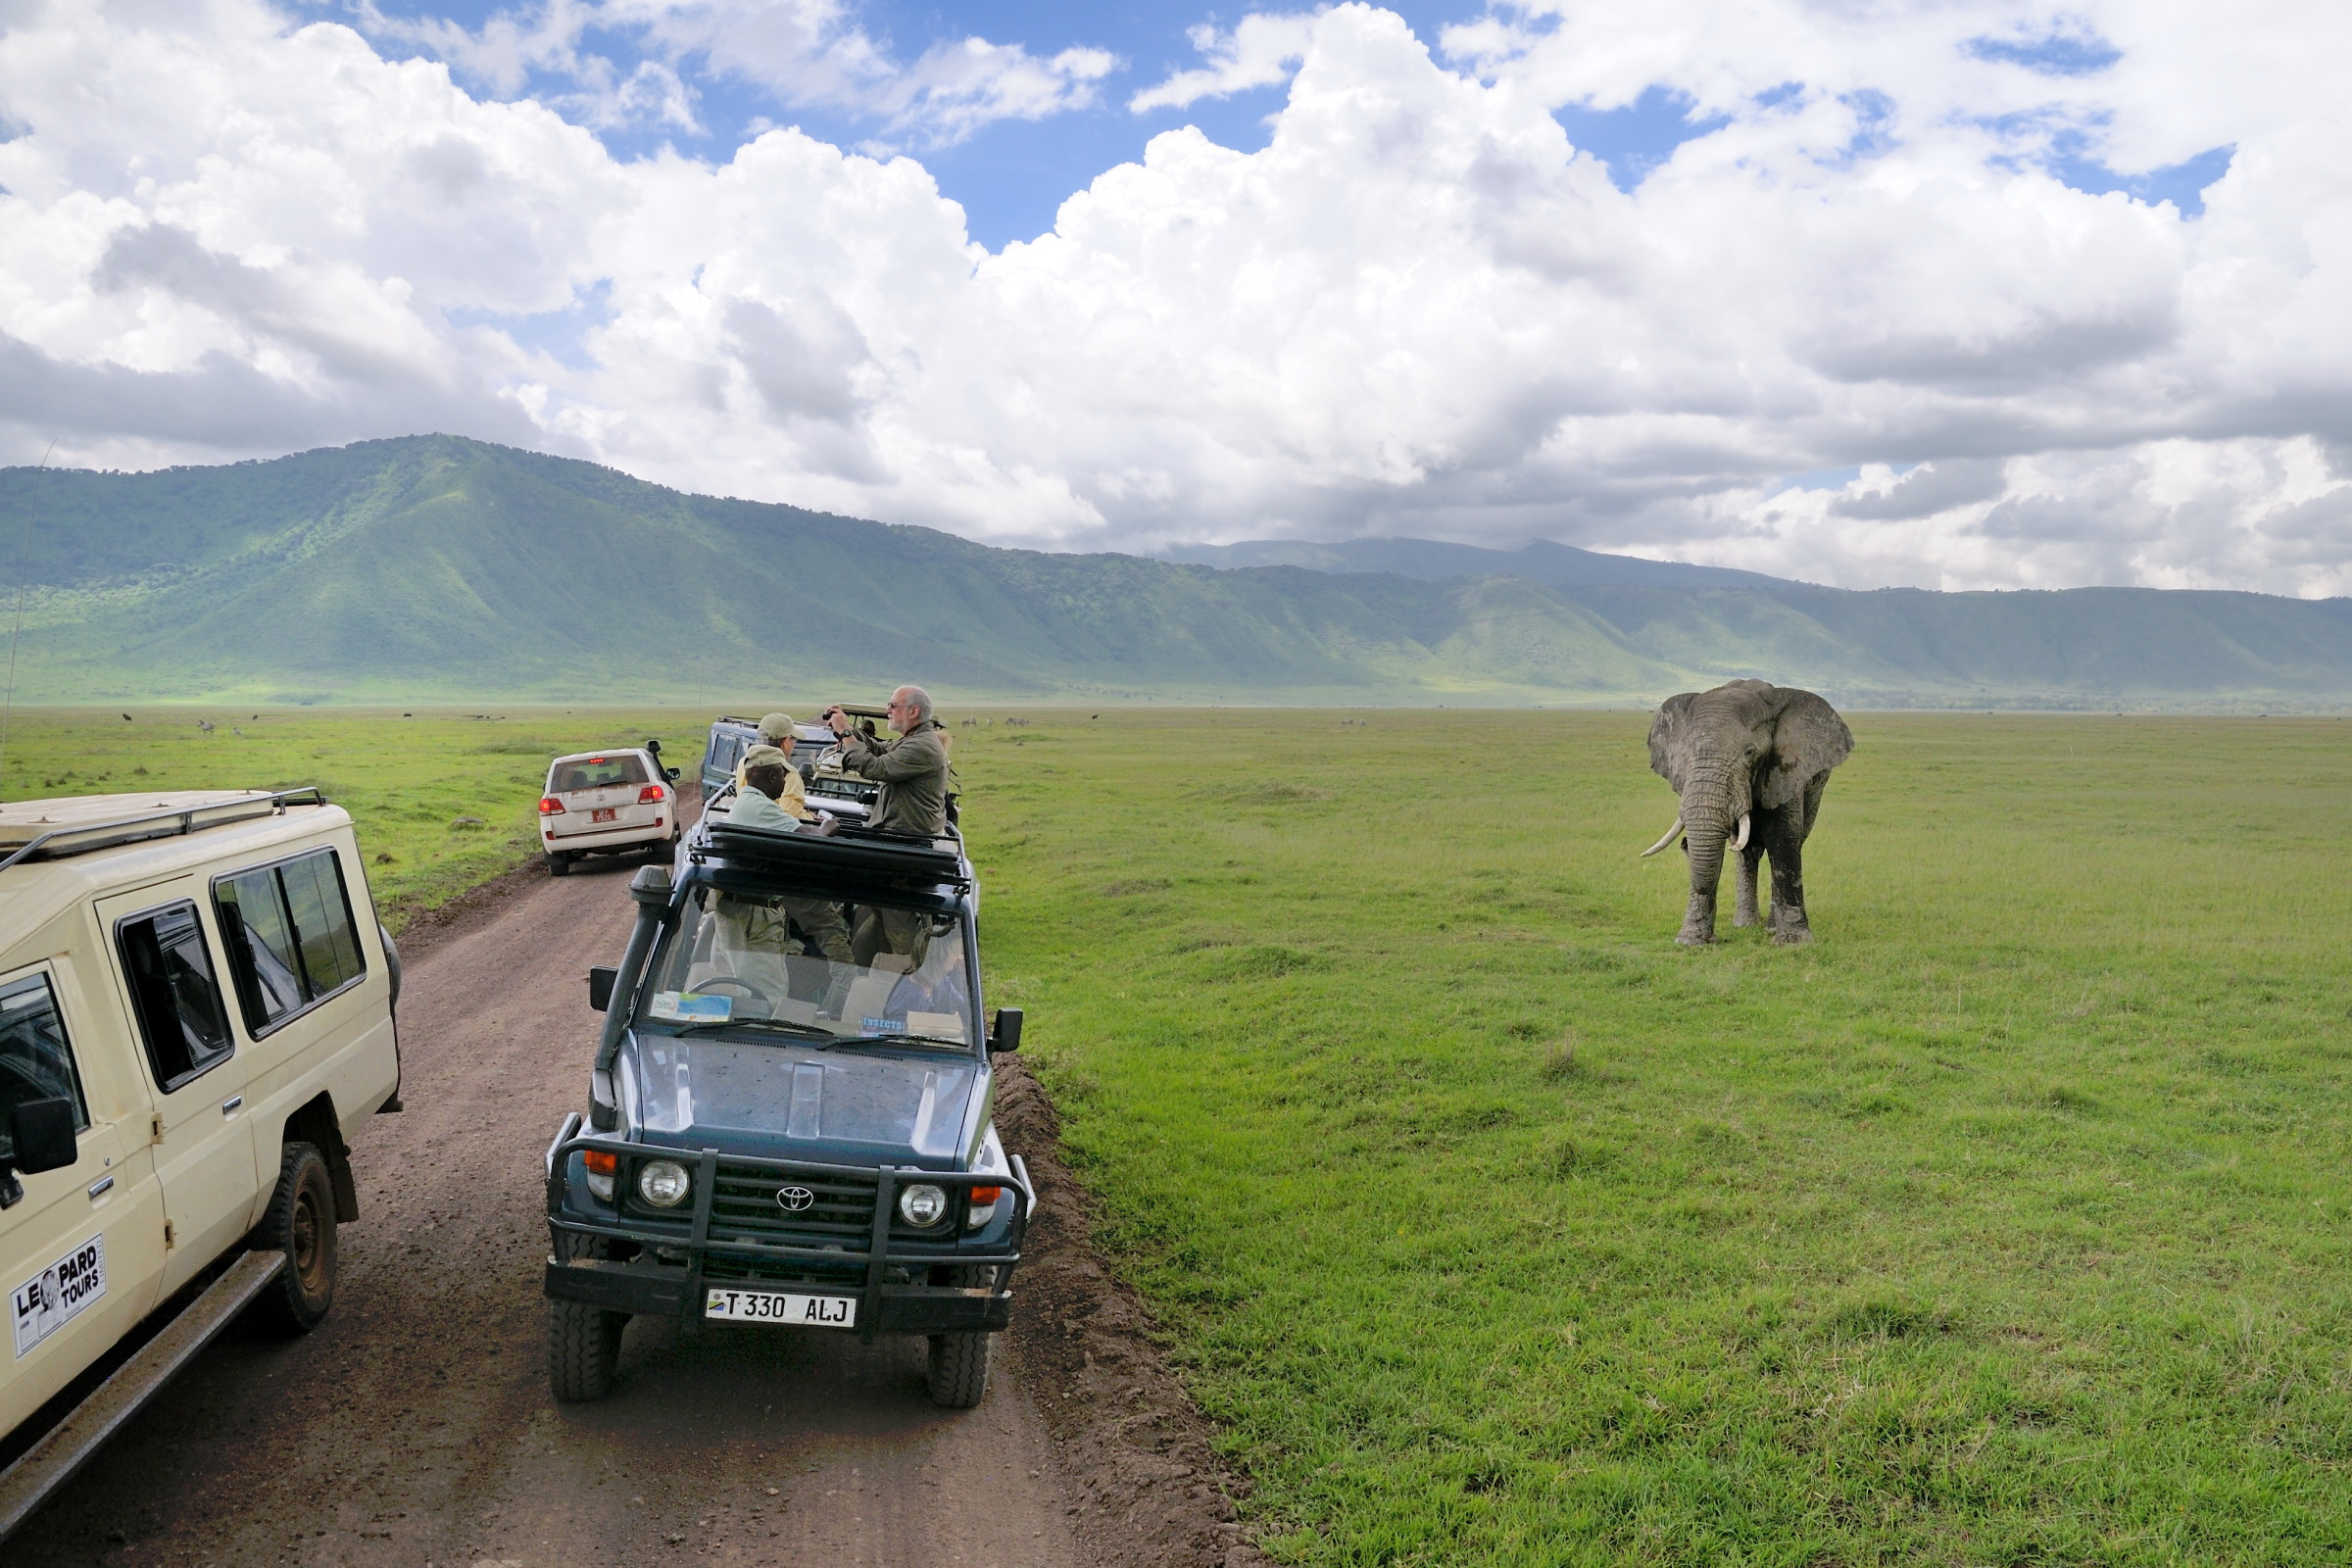 Govt welcomes ideas to improve tourism sector